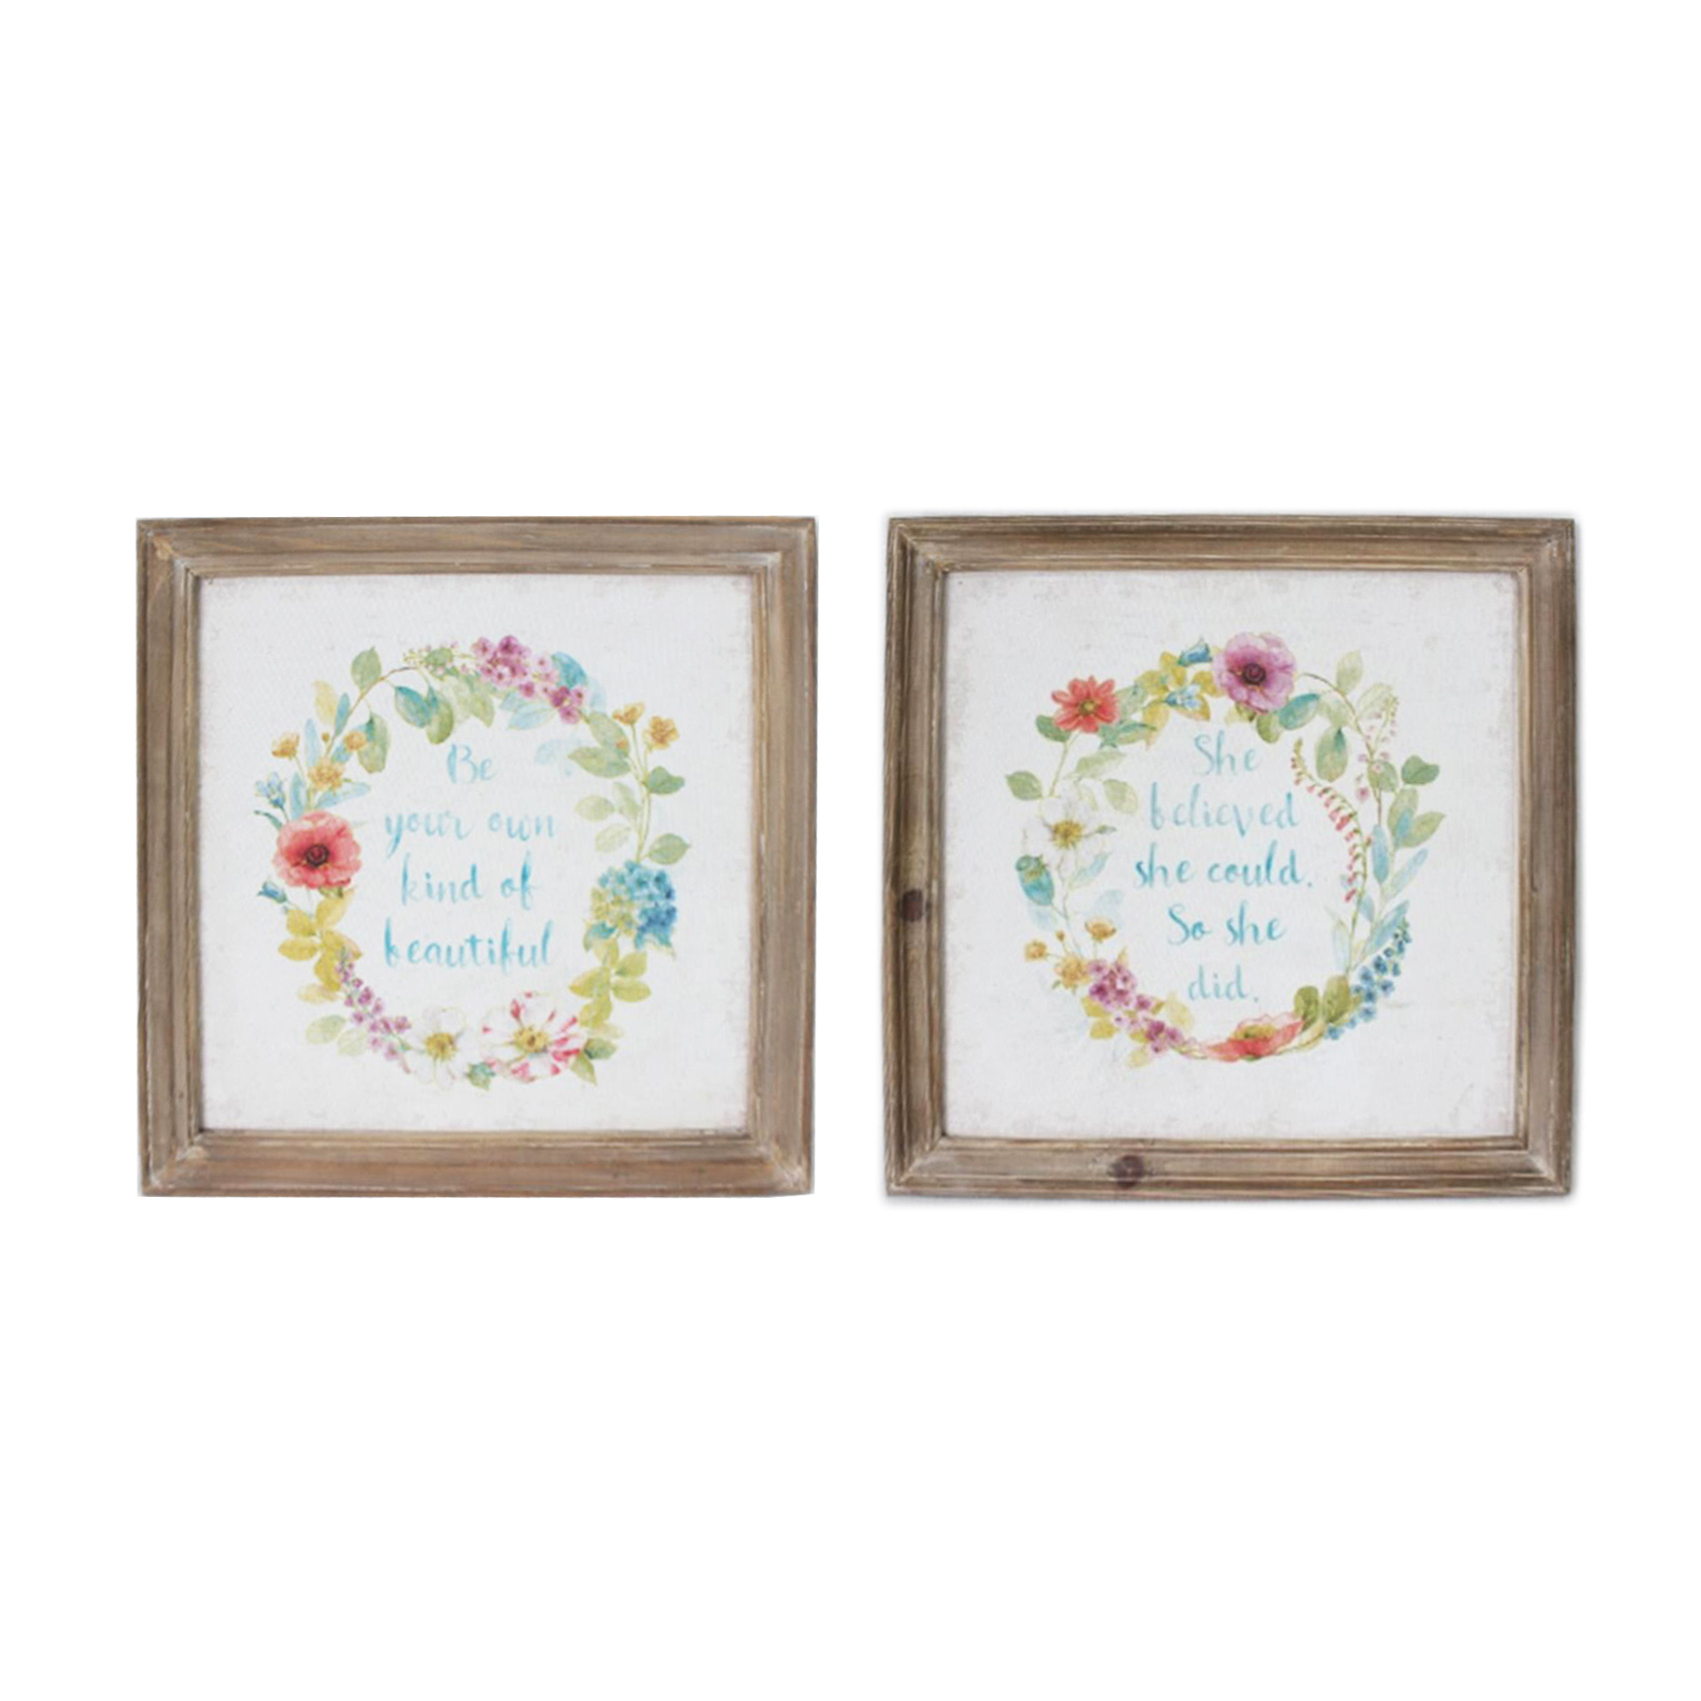 Details About 2X Shabby Chic Wooden Framed Floral Wreath Canvas Print  Picture Wall Art with Floral Wreath Wood Framed Wall Decor (Image 9 of 30)